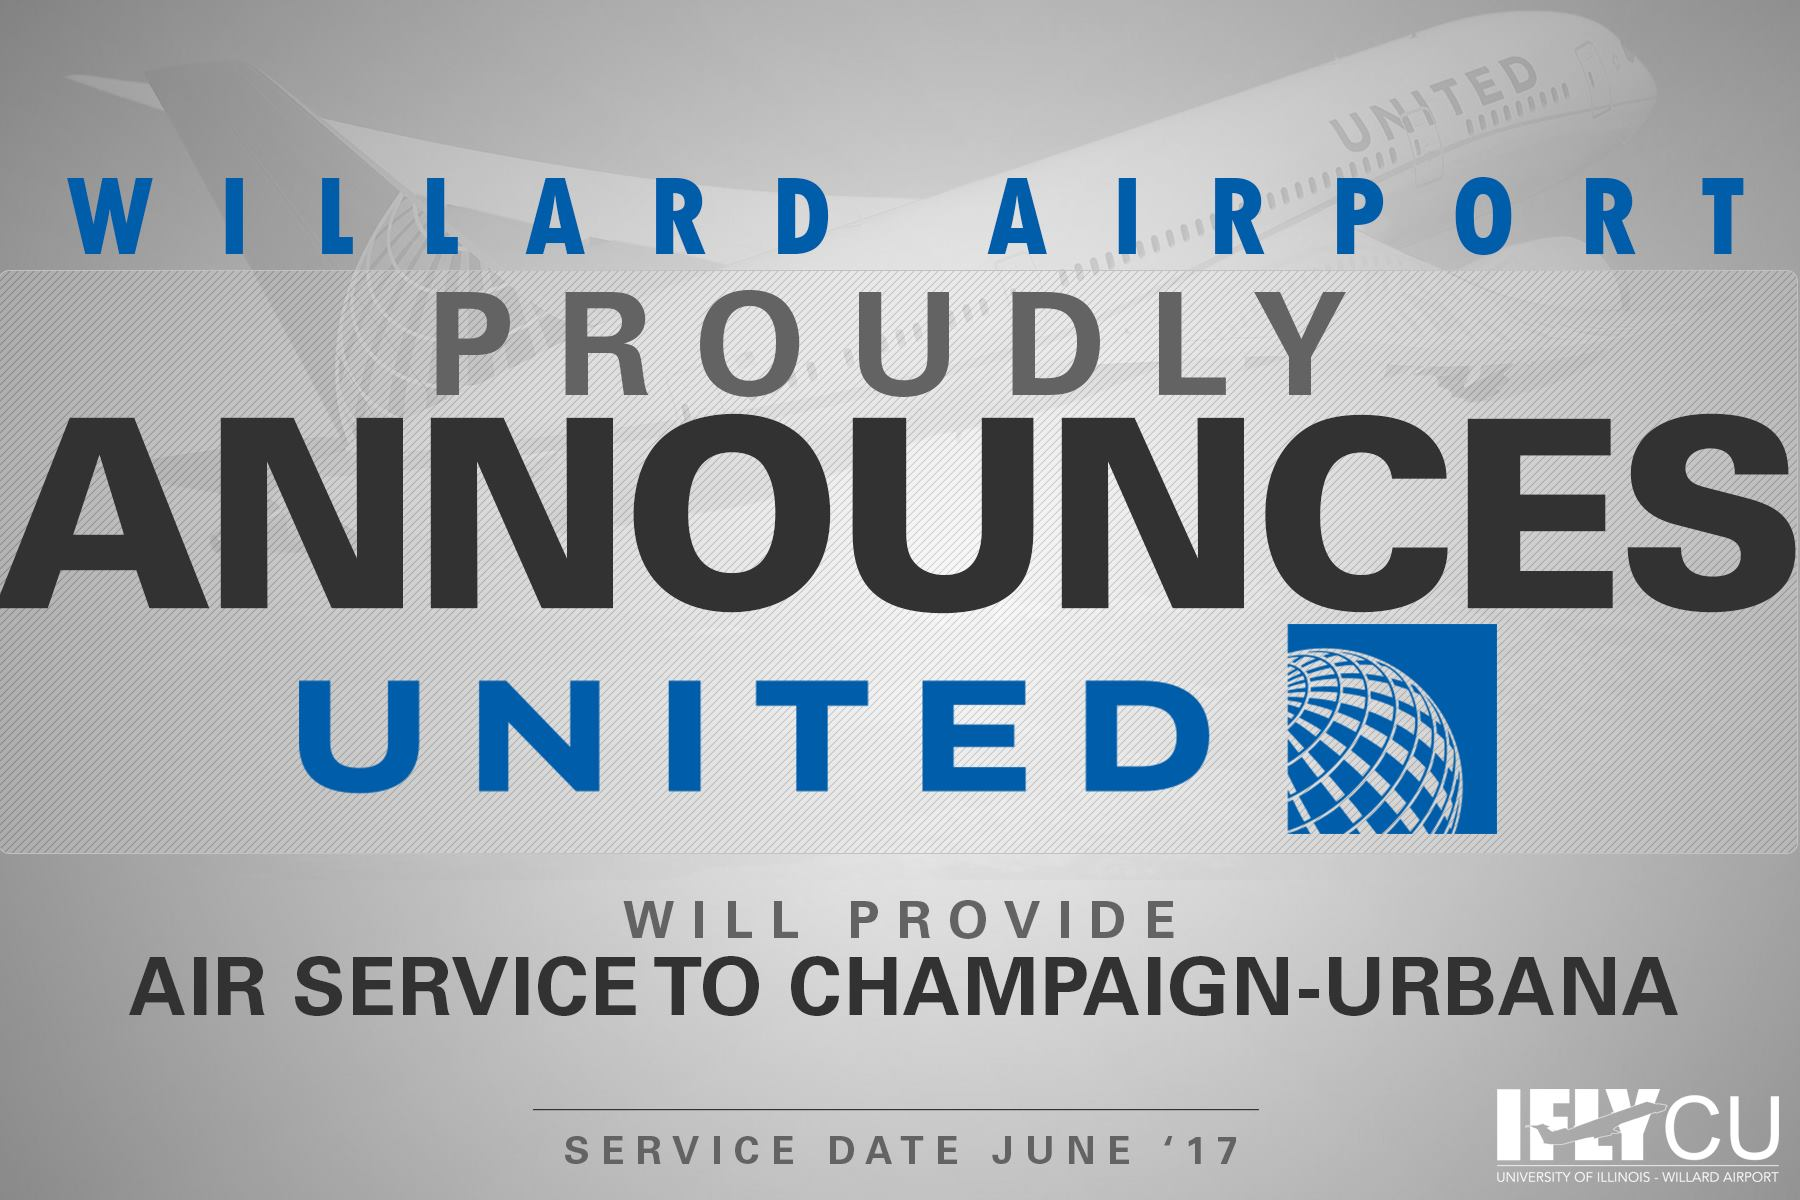 willard airport announces new service from United Airlines